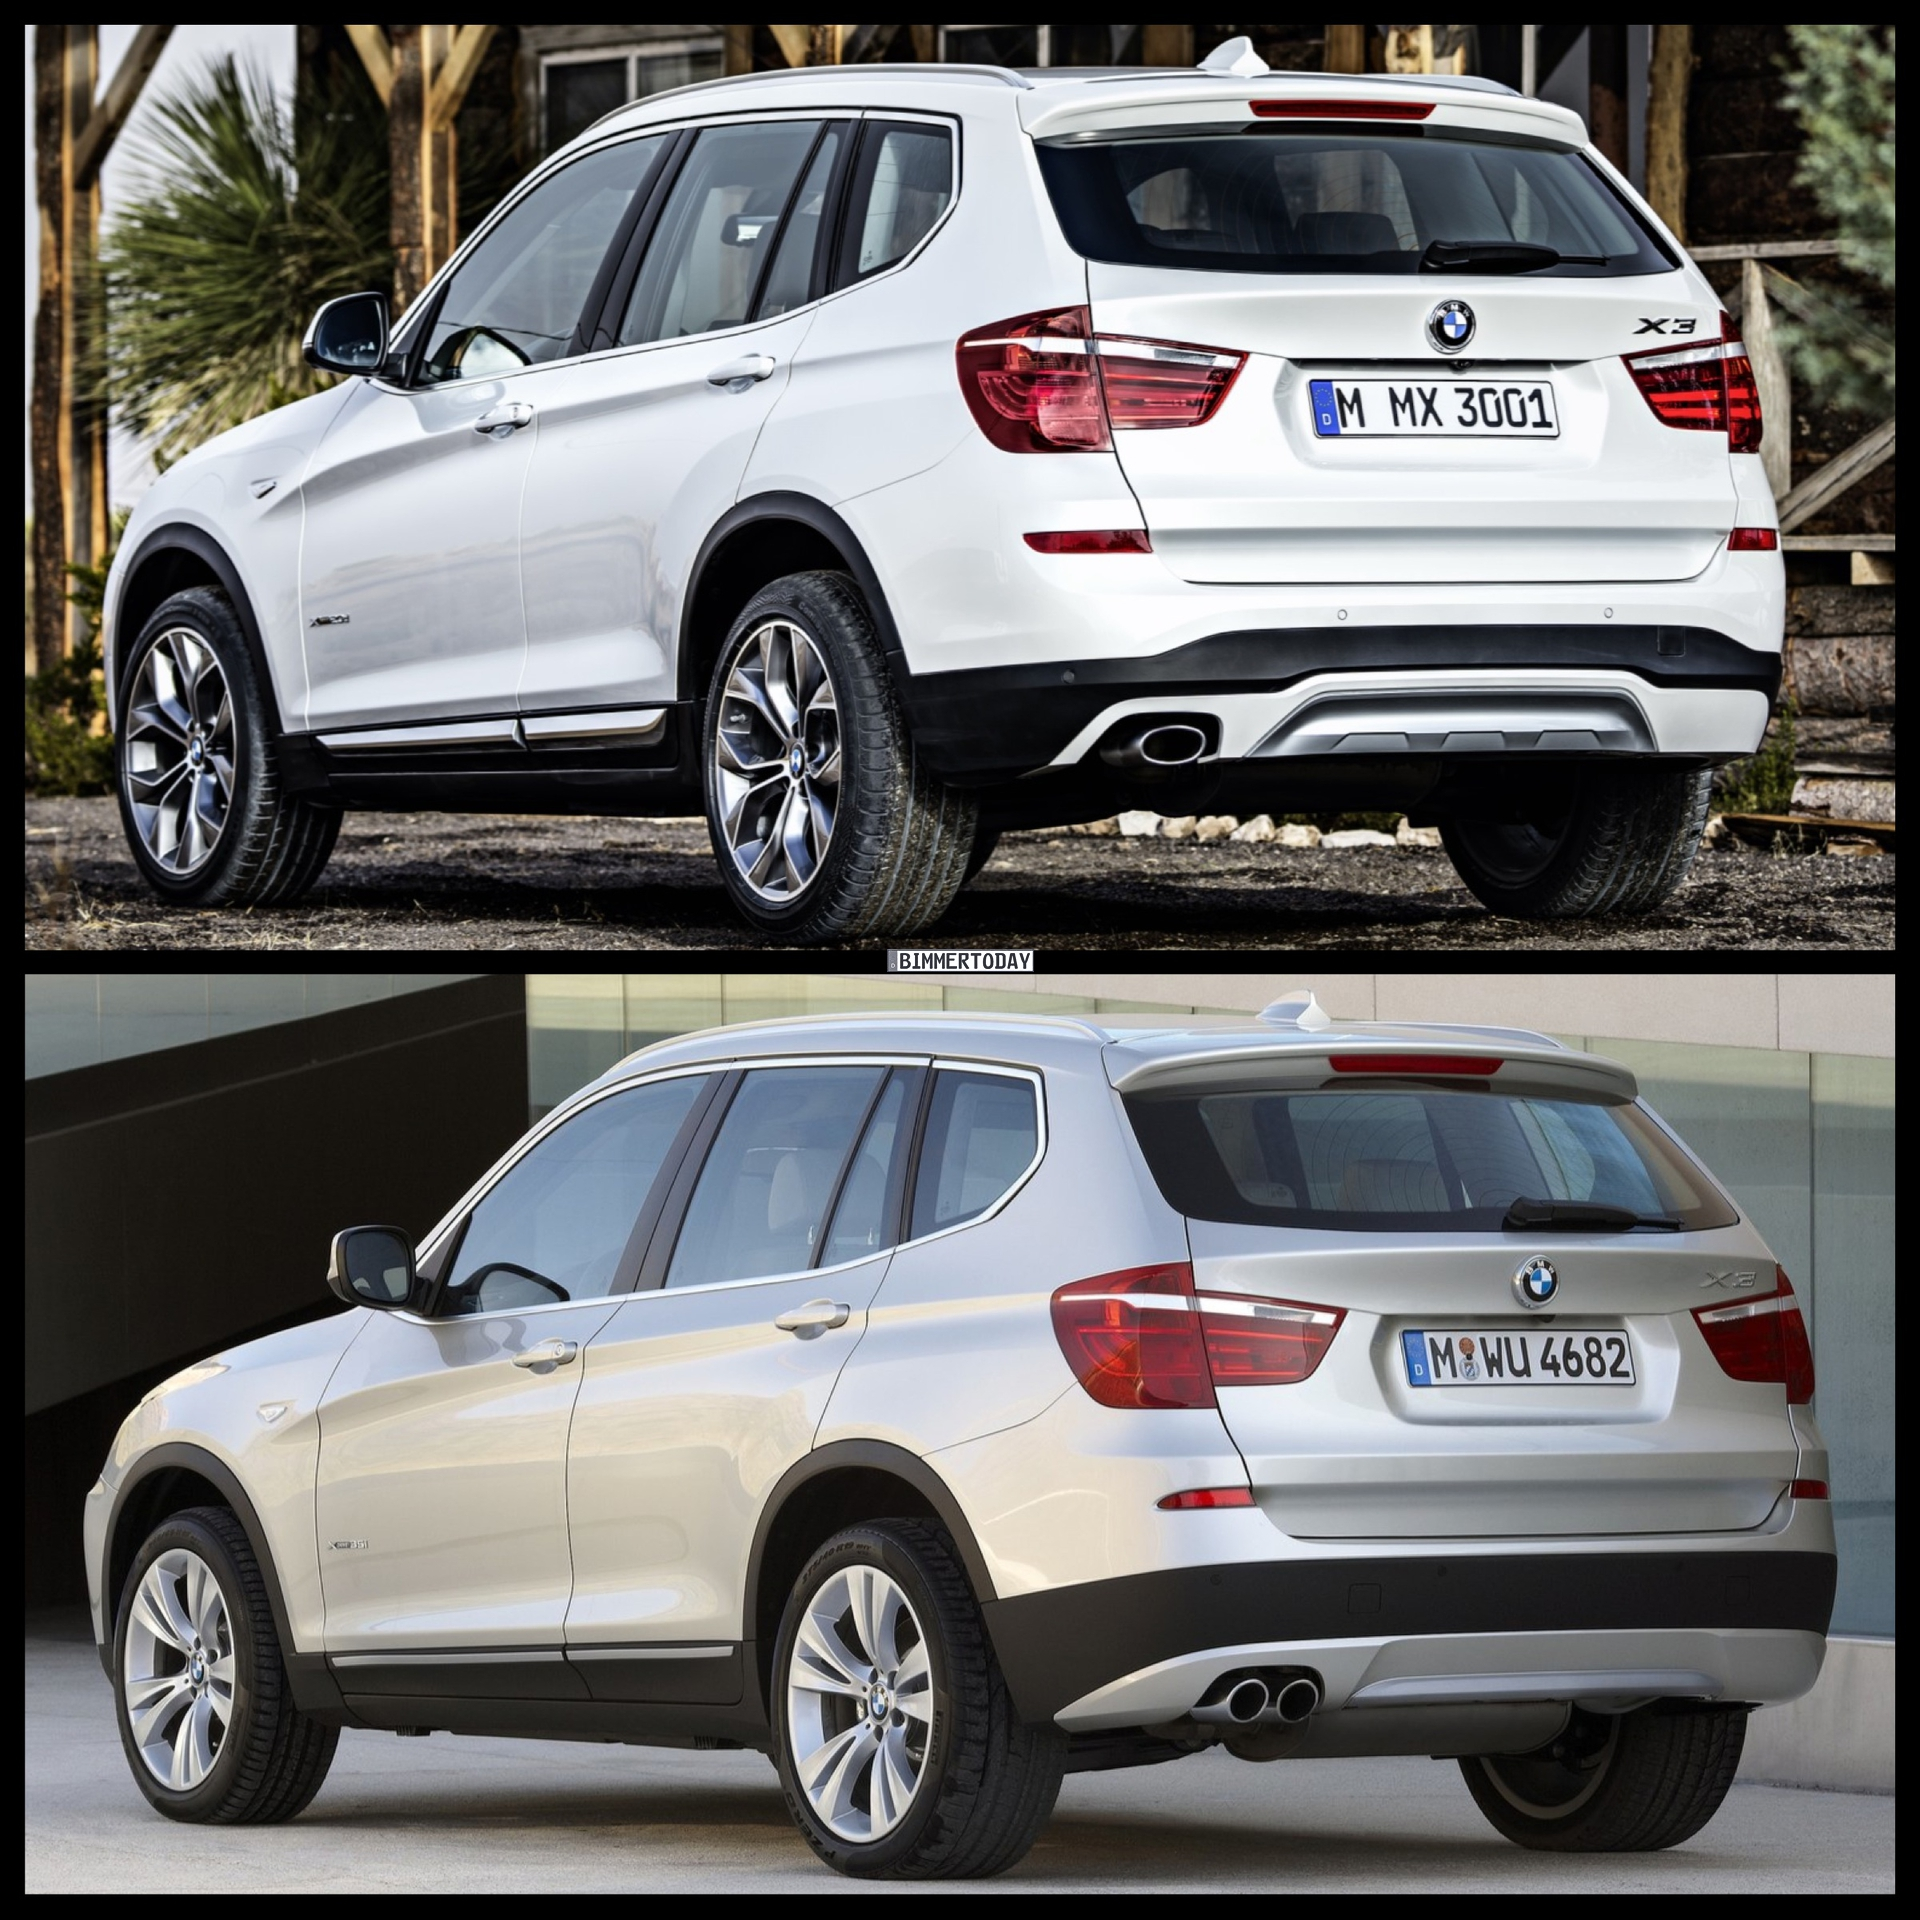 Bmw Xdrive35i Price: 2015 BMW X3 Facelift Vs. BMW X3 Pre-Facelift